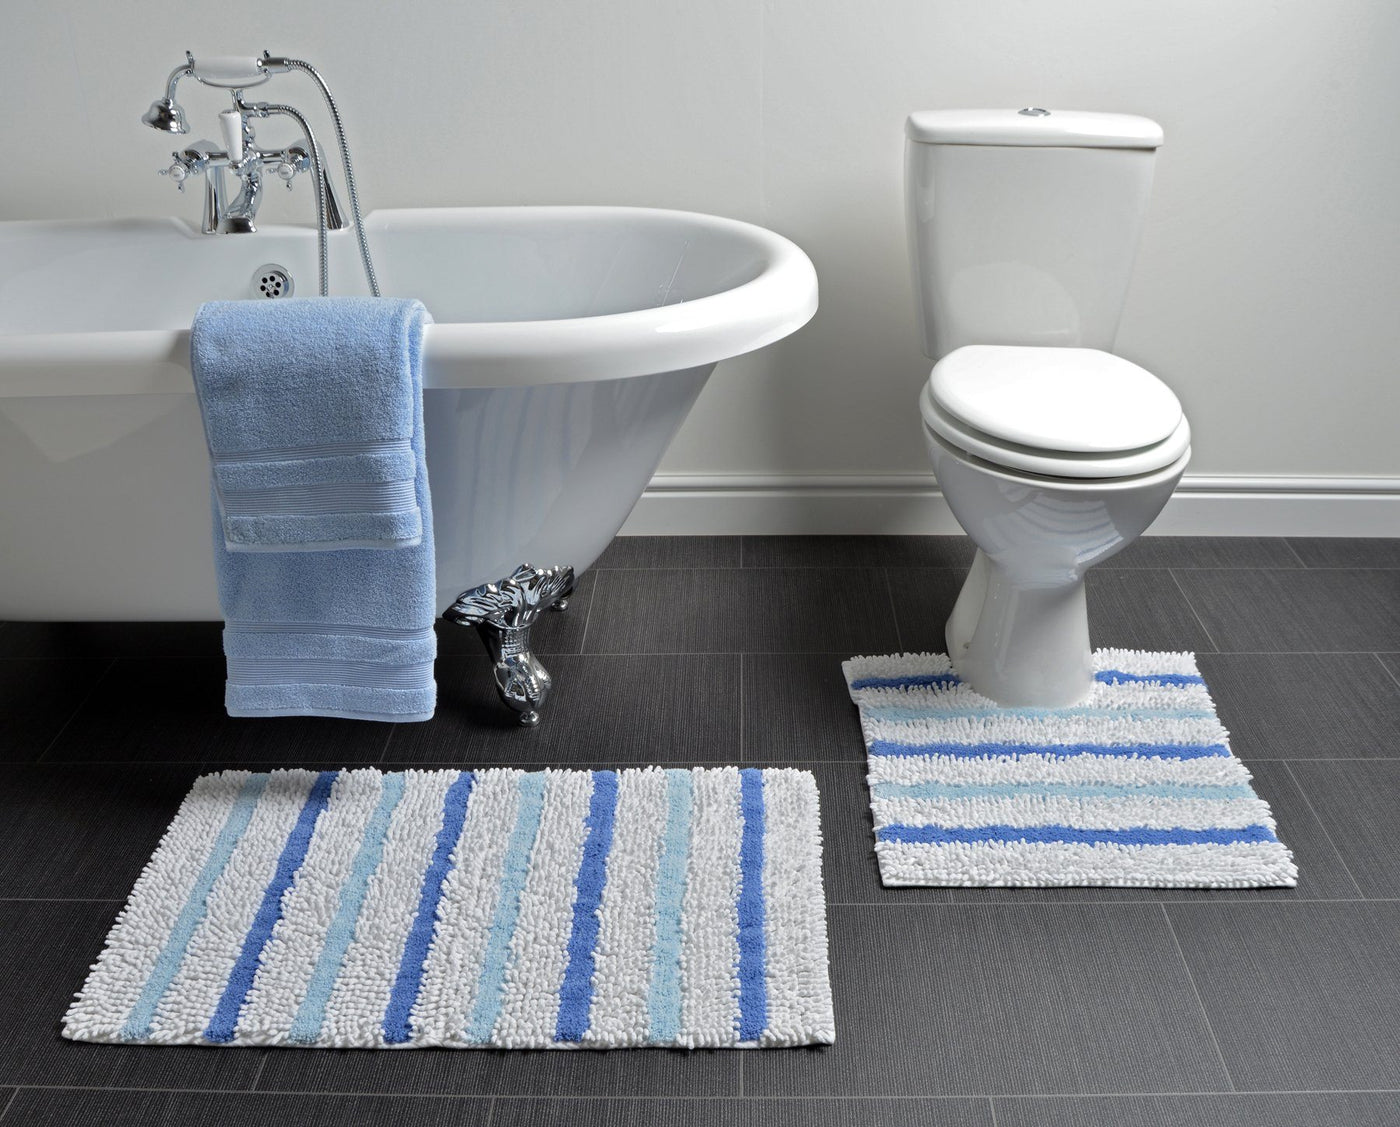 Two-Piece Bathroom Mat Sets